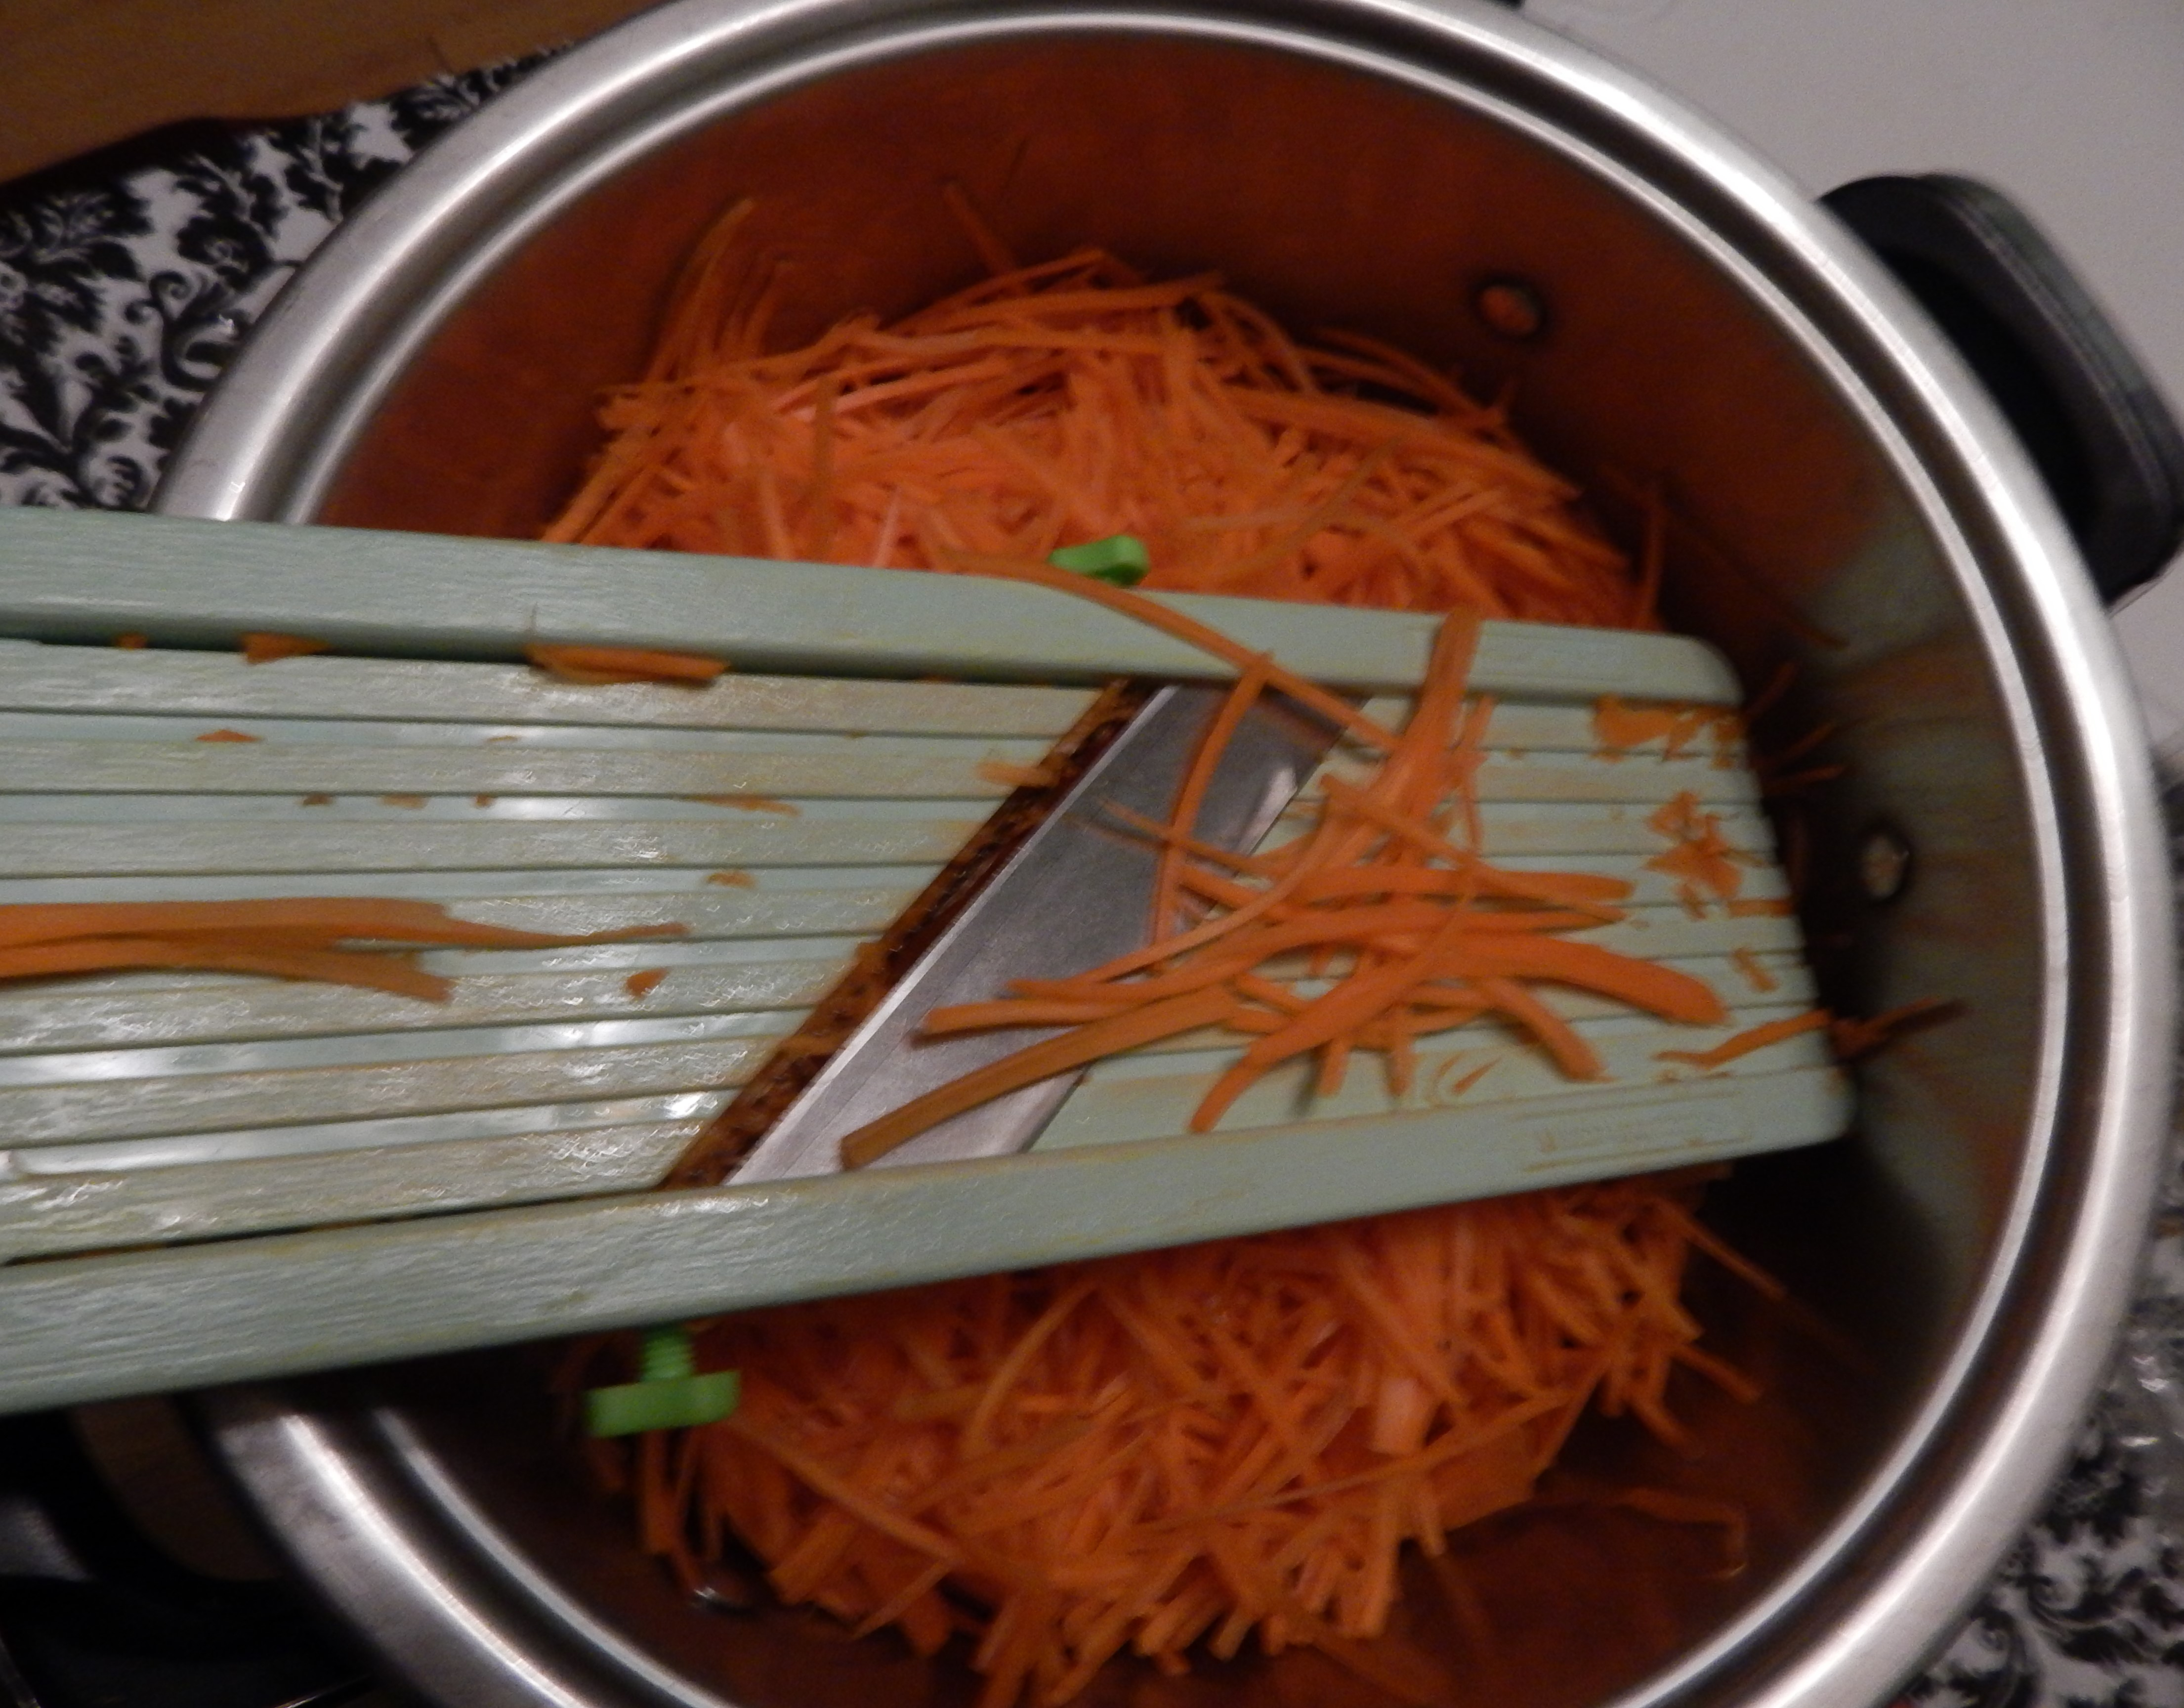 The exact recipe for cooking Korean carrots